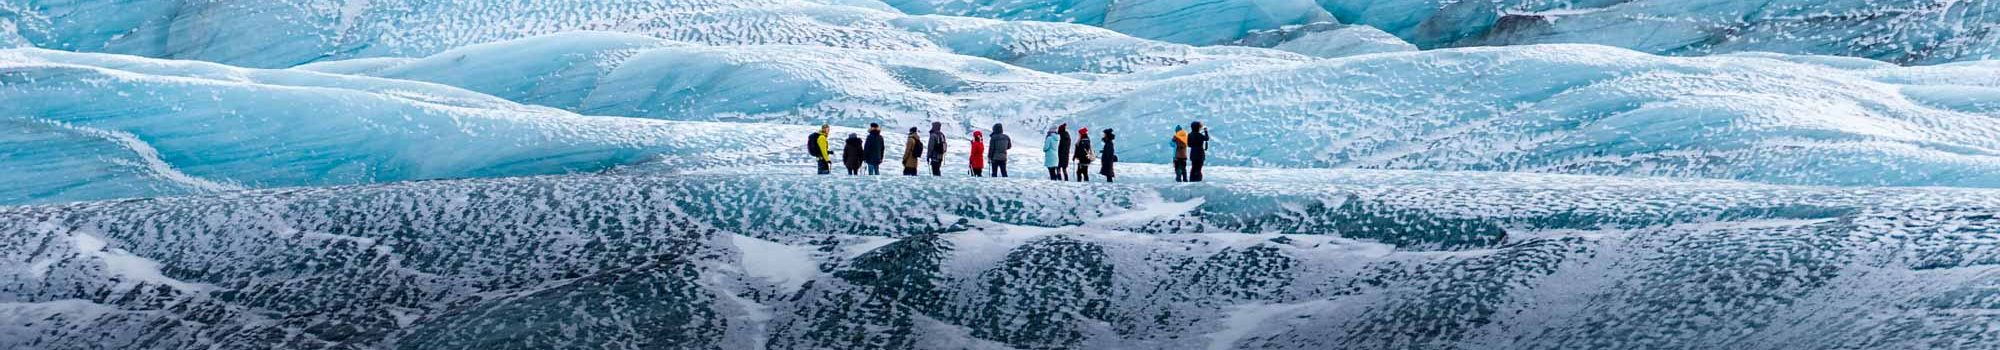 Mountaineers hiking on a glacier in Iceland